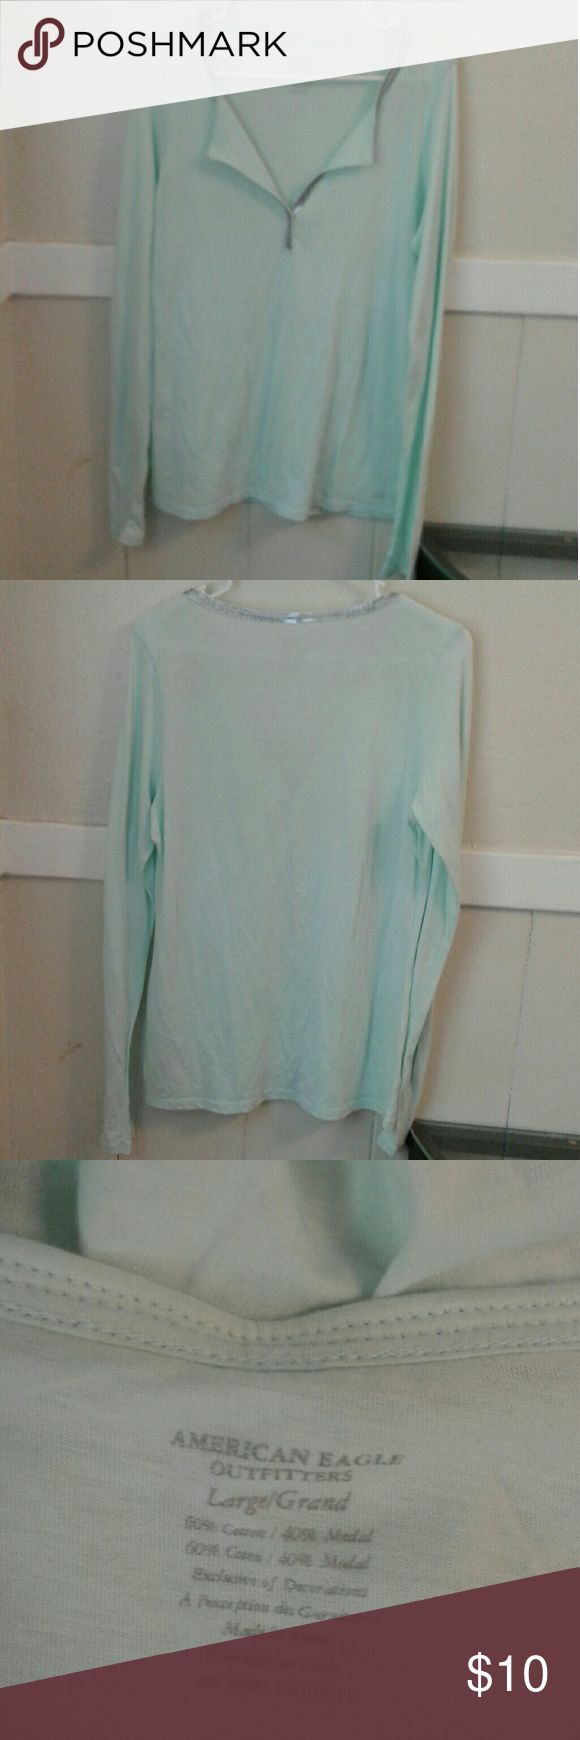 American Eagle shirt American Eagle shirt new light seafoam green American Eagle Outfitters Tops Blouses